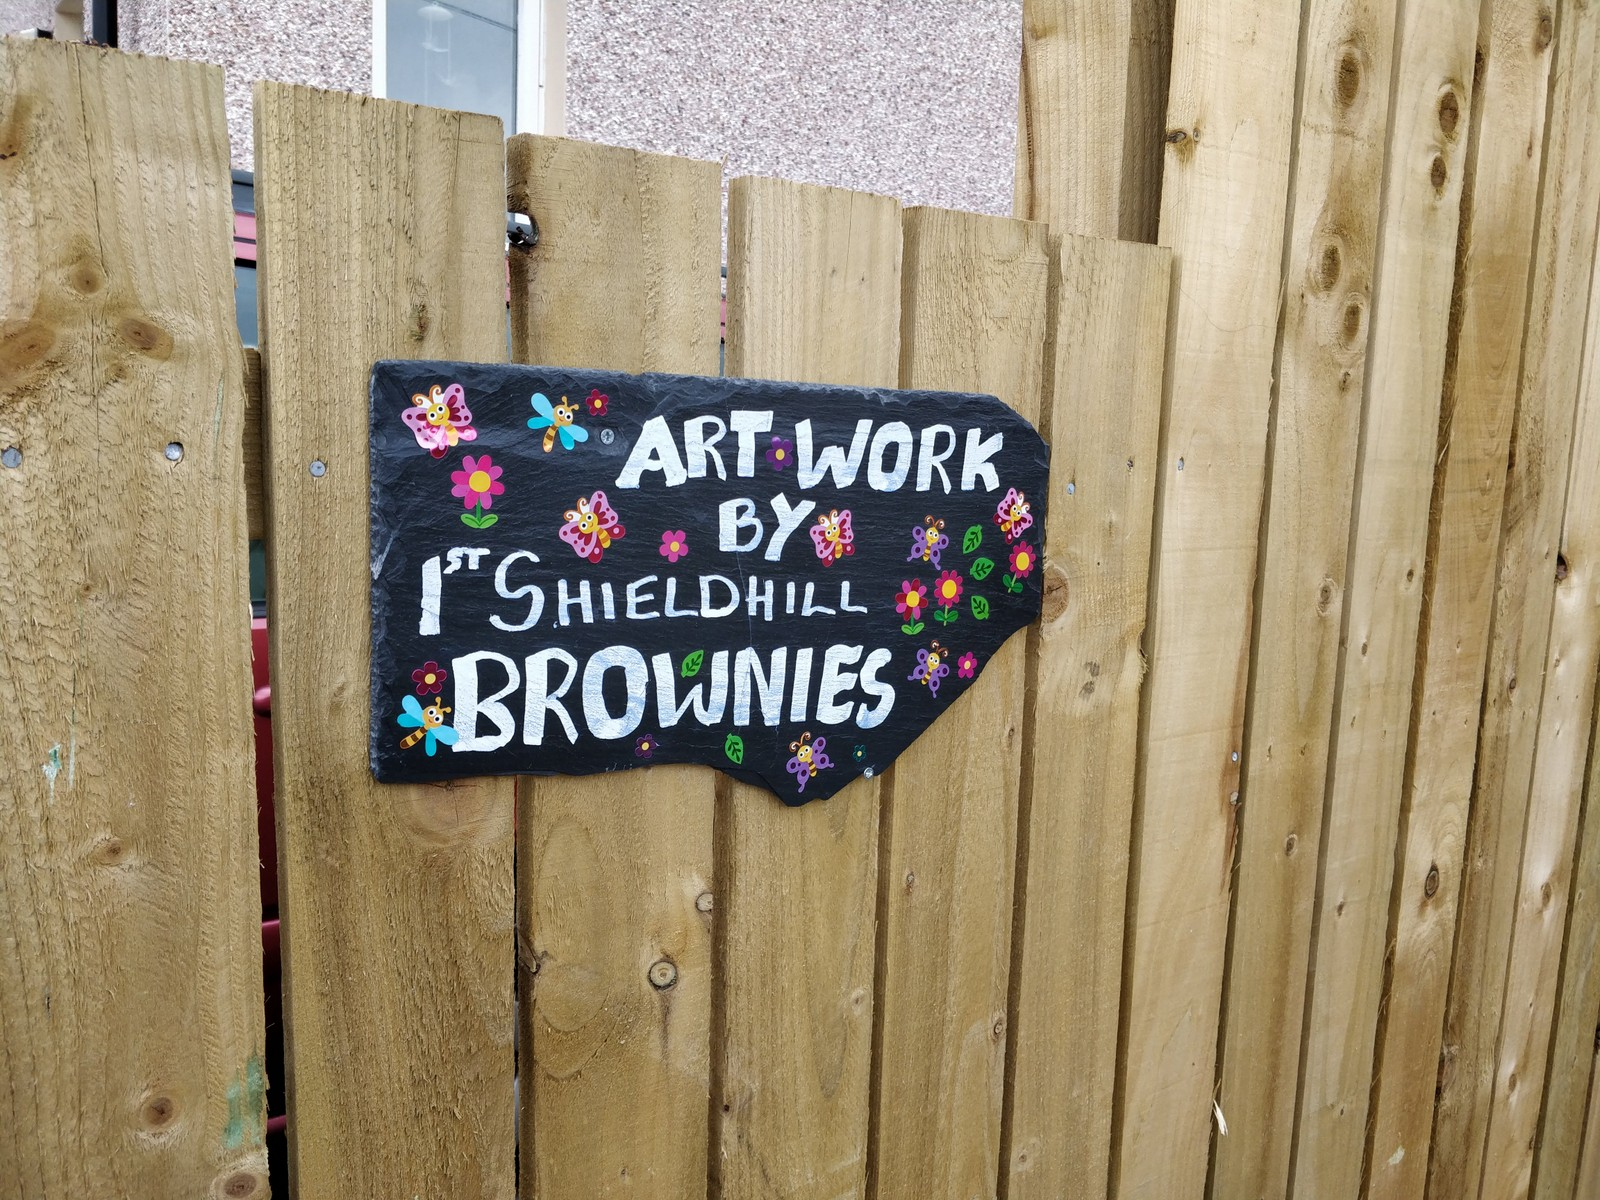 Artwork by 1st Shieldhill Brownies